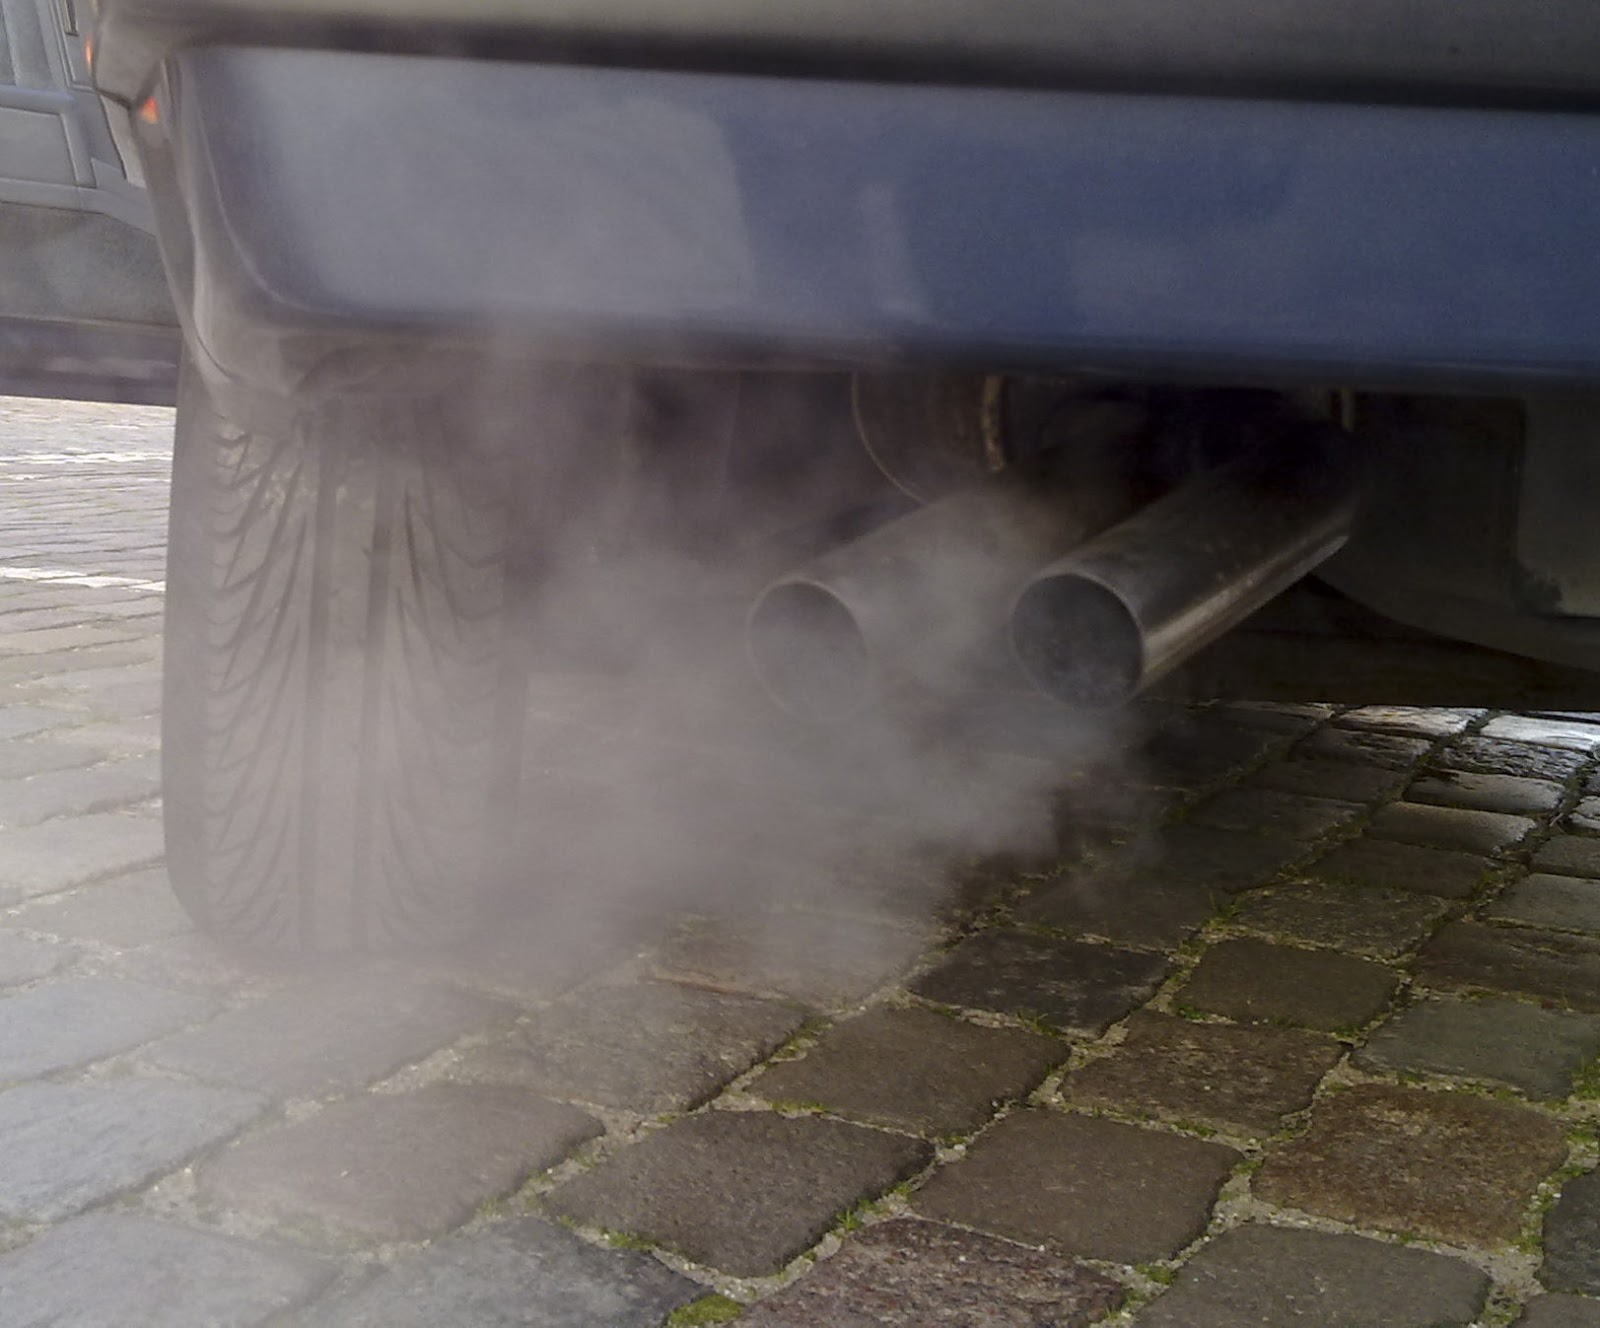 Automobile_exhaust_gas.jpg